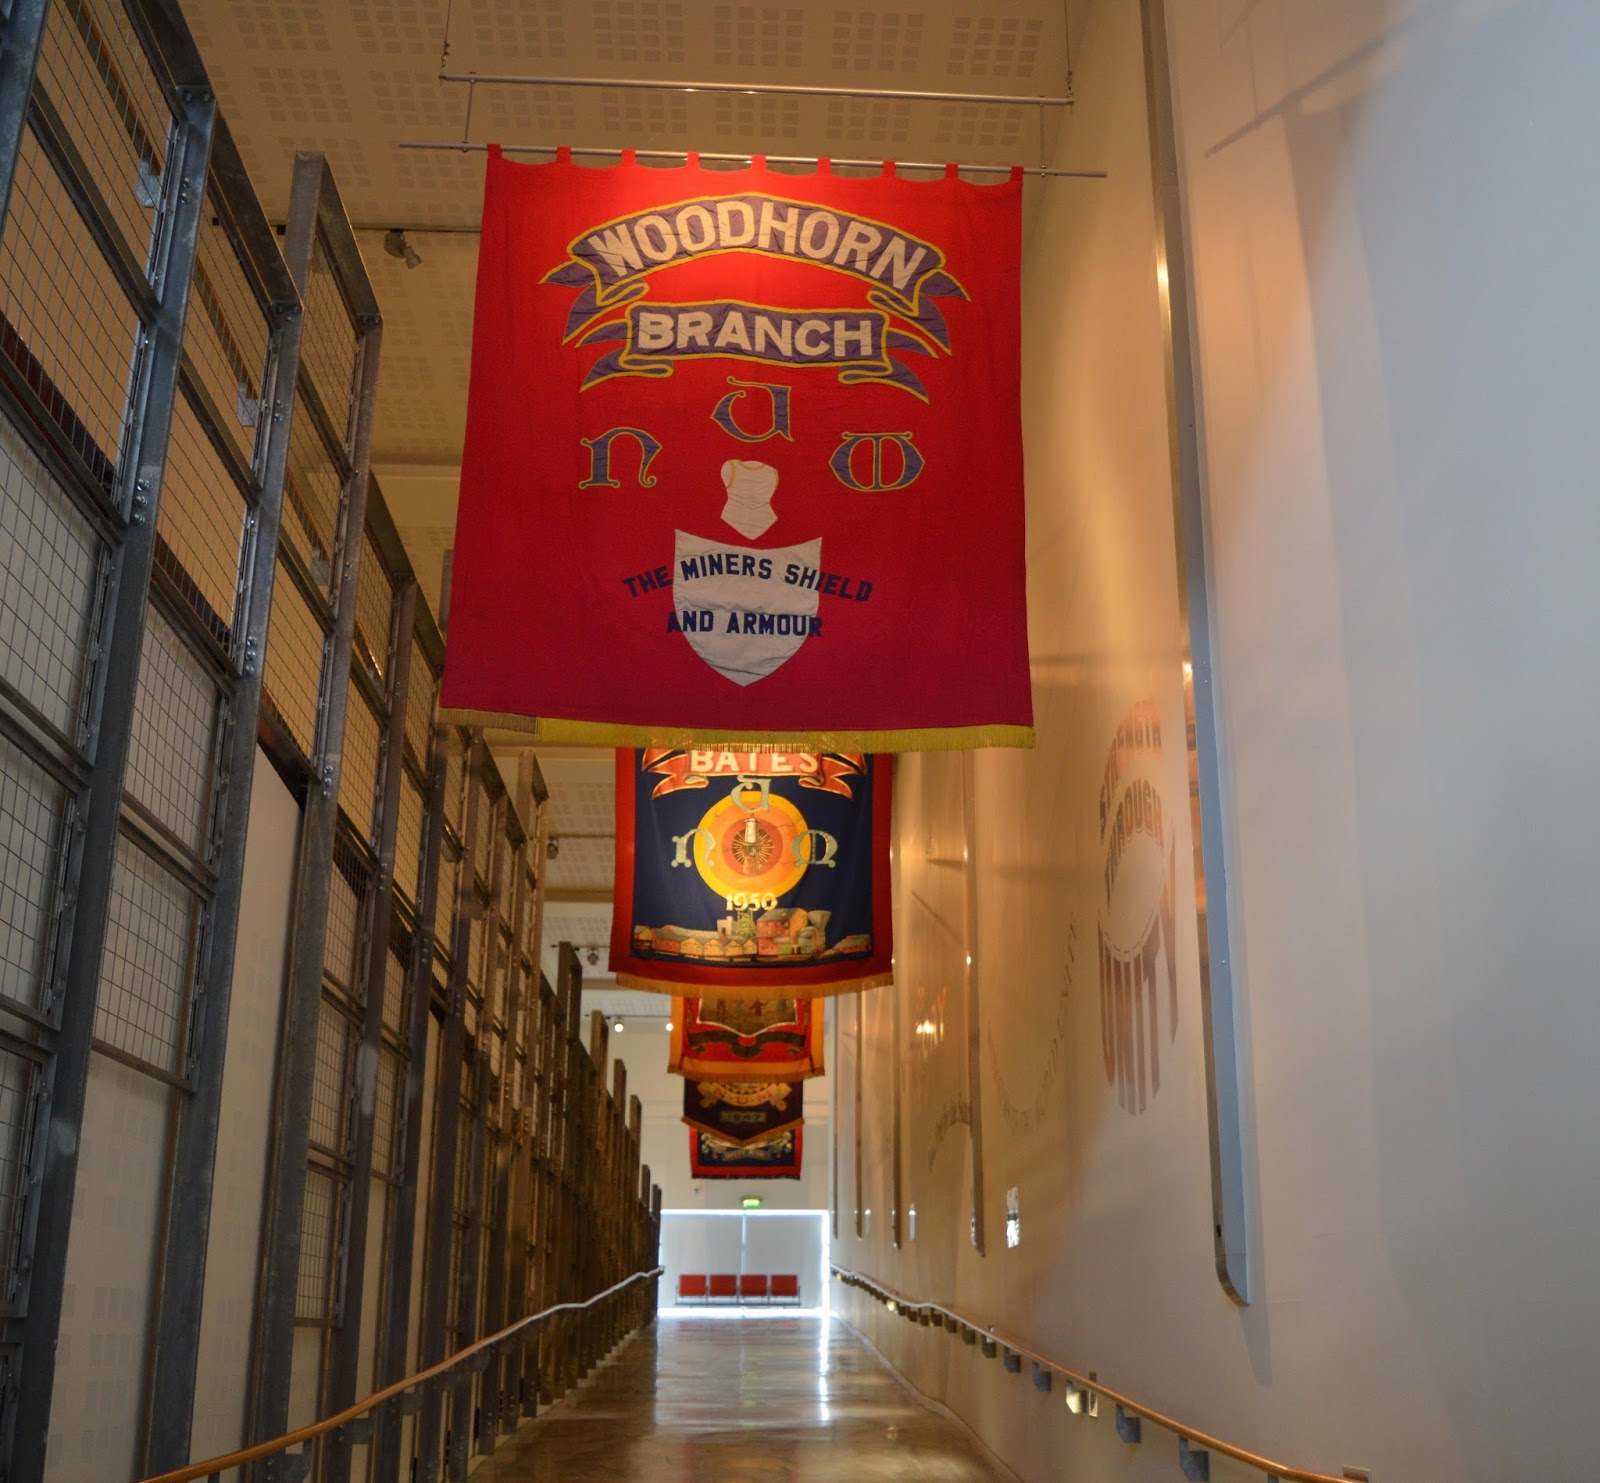 10 Reasons to Visit Woodhorn Museum (A Review) - woodhorn banners